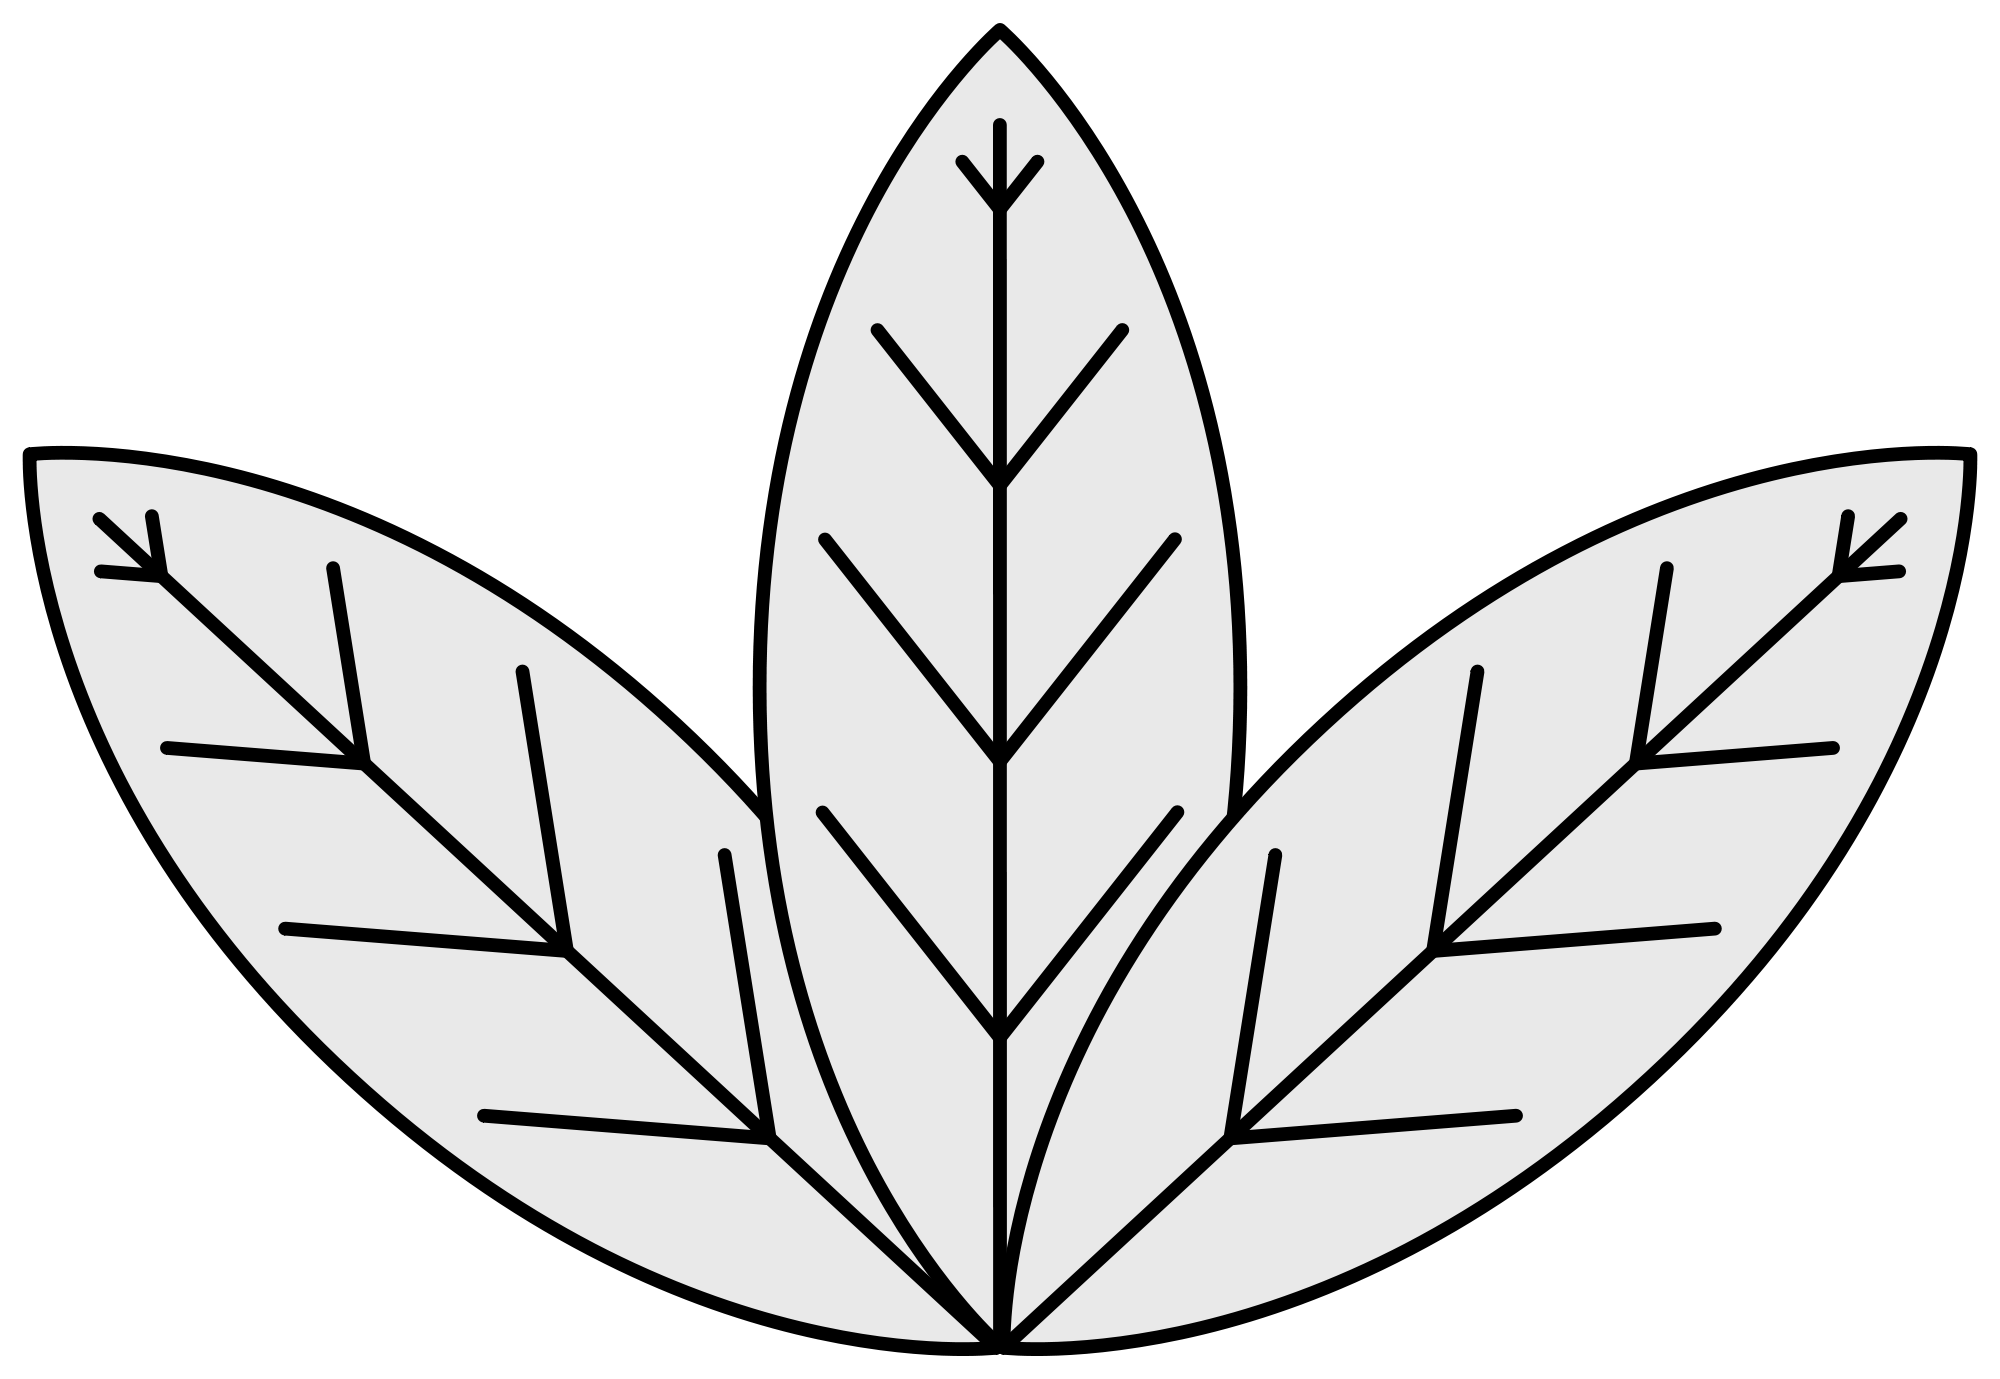 Leaves clipart tobacco leaf, Picture #1526414 leaves clipart.